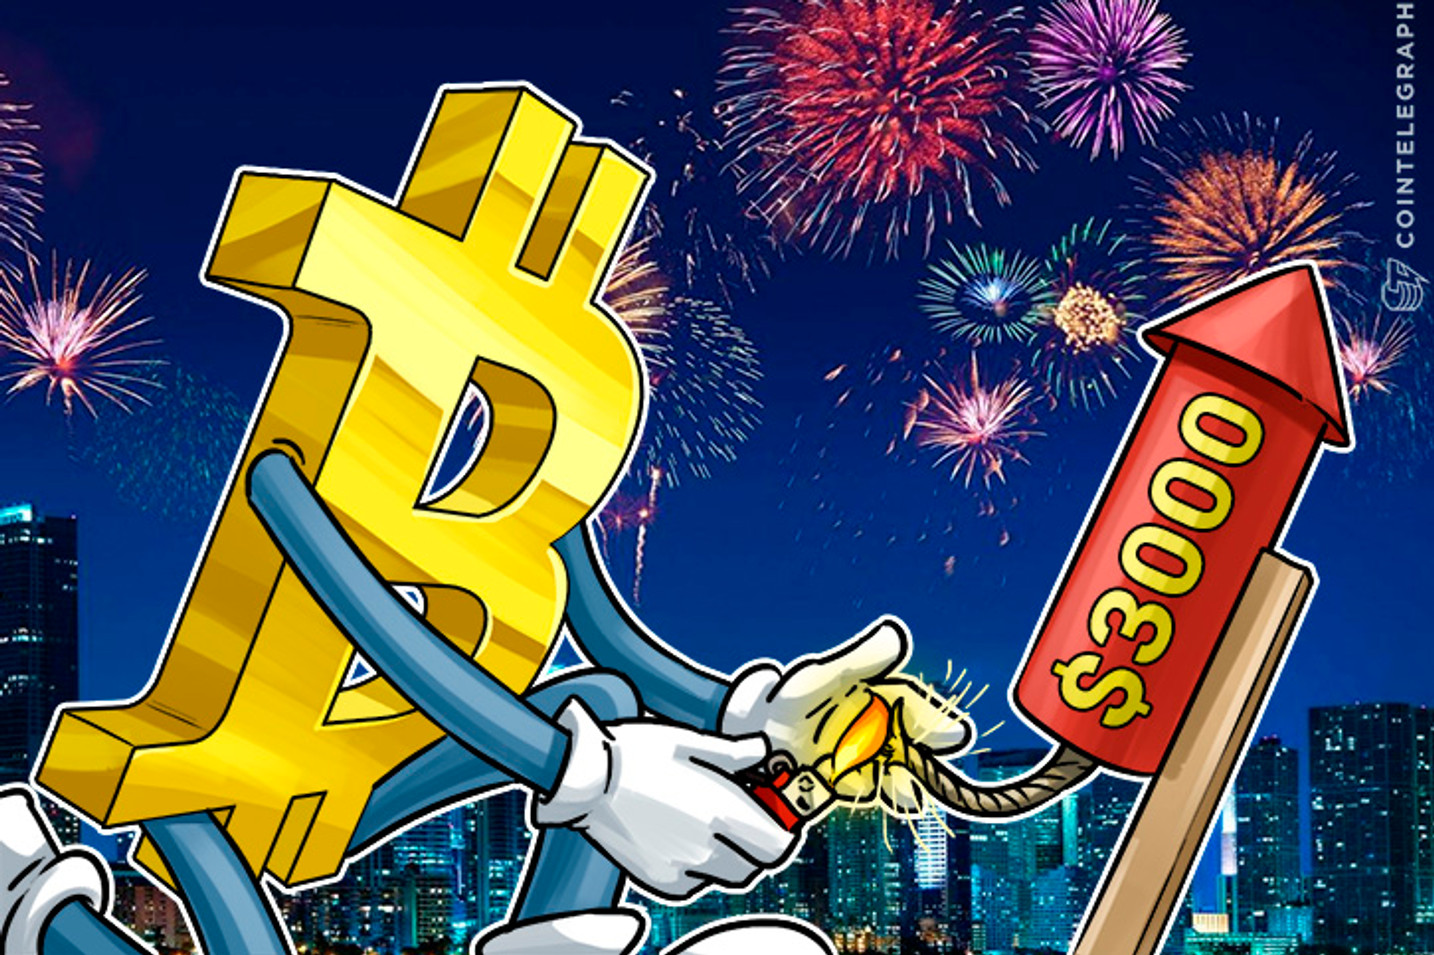 Bitcoin Price Hits New All-Time High at $2,933, Closing on $3,000